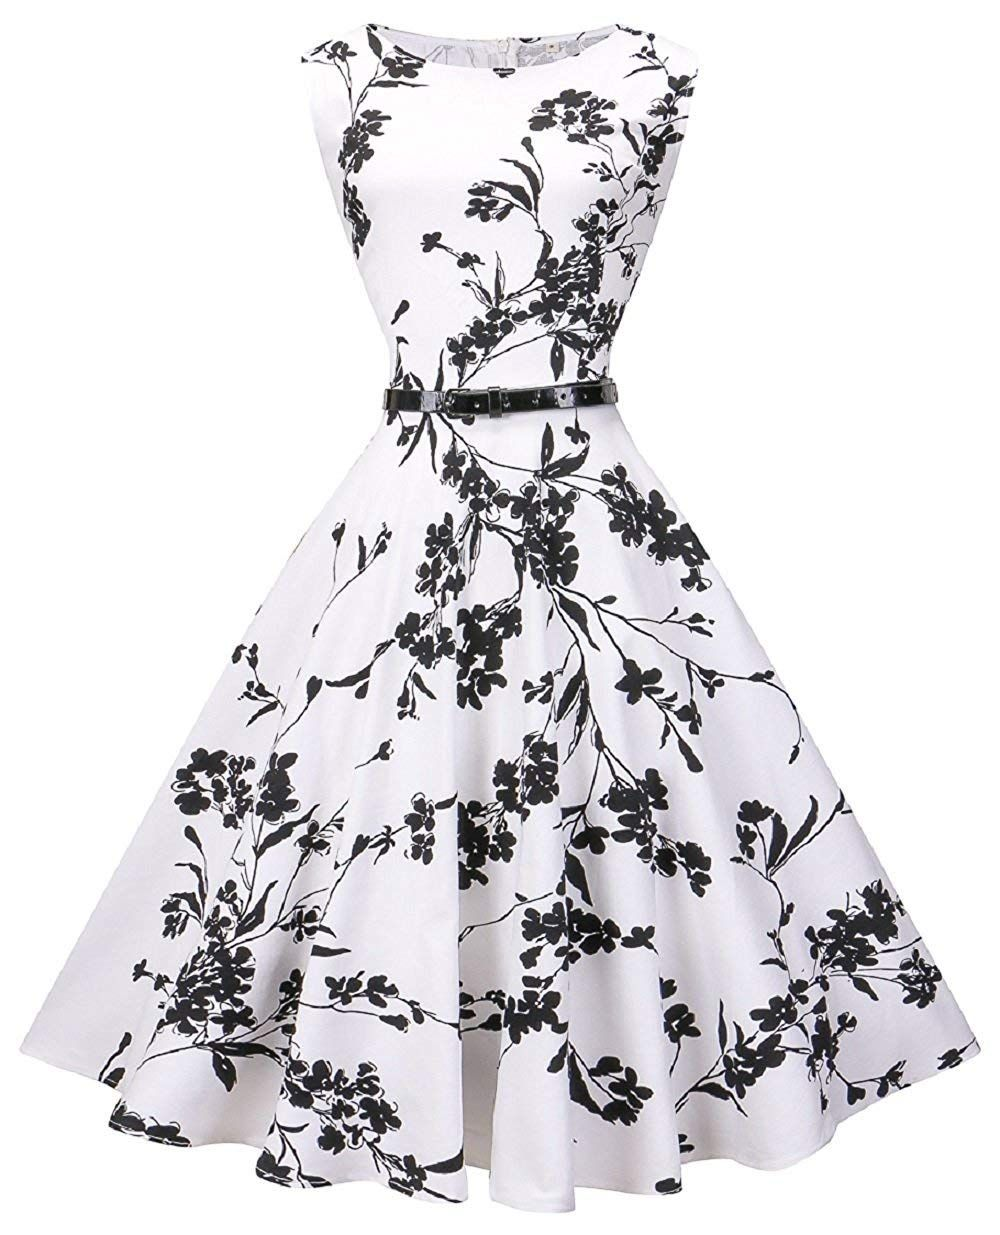 Amazon Com Lacelady Boatneck Vintage Sleeveless Tea Dress With Belt Pleated Swing Party Clothing Vintage Tea Dress Cute Prom Dresses Womens Cocktail Dresses [ 1235 x 1000 Pixel ]